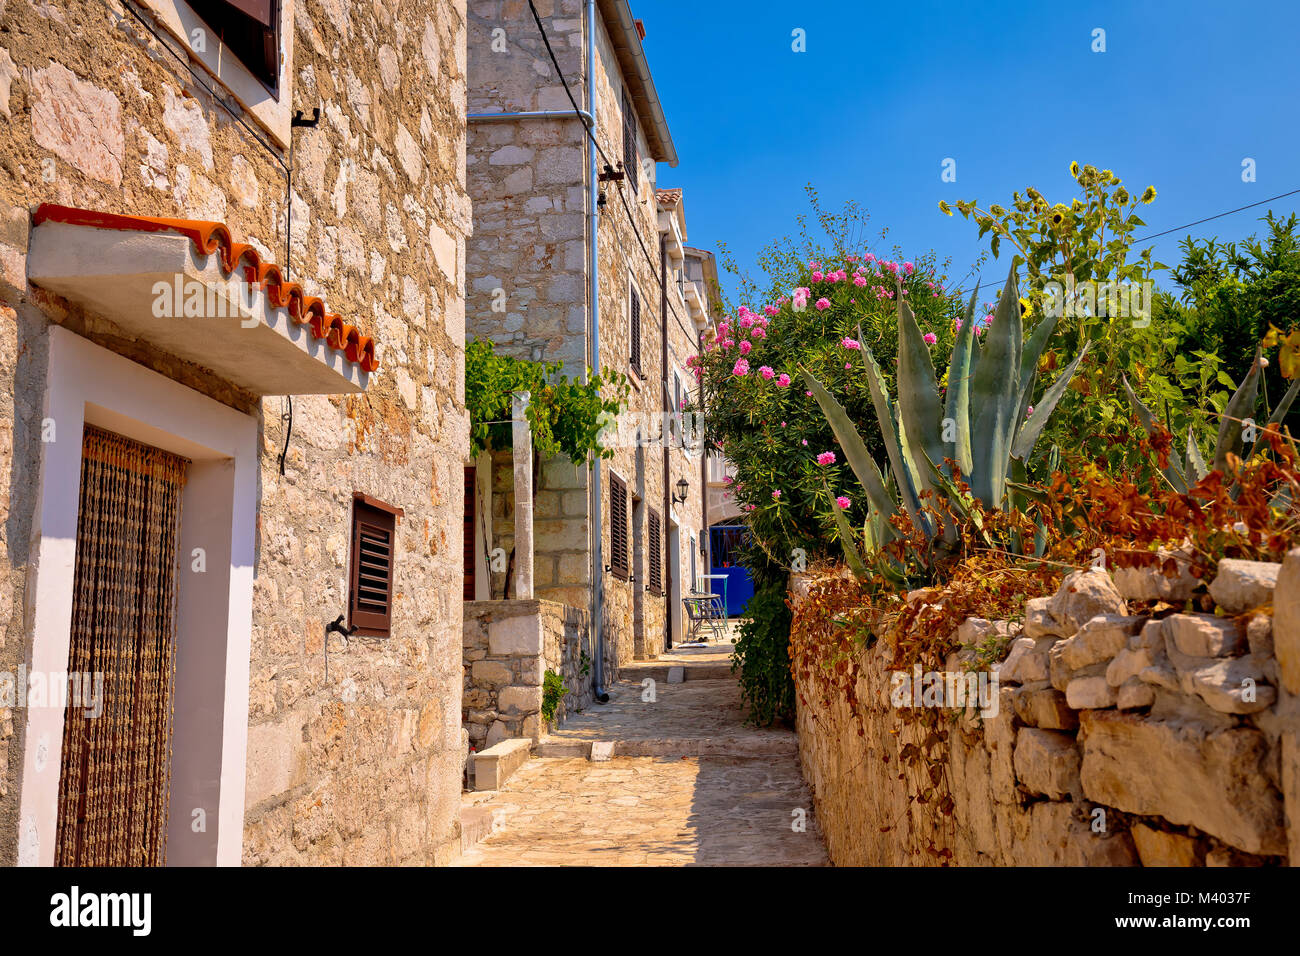 Colorful mediterranean stone street of Prvic island, Sibenik archipelago of Croatia - Stock Image